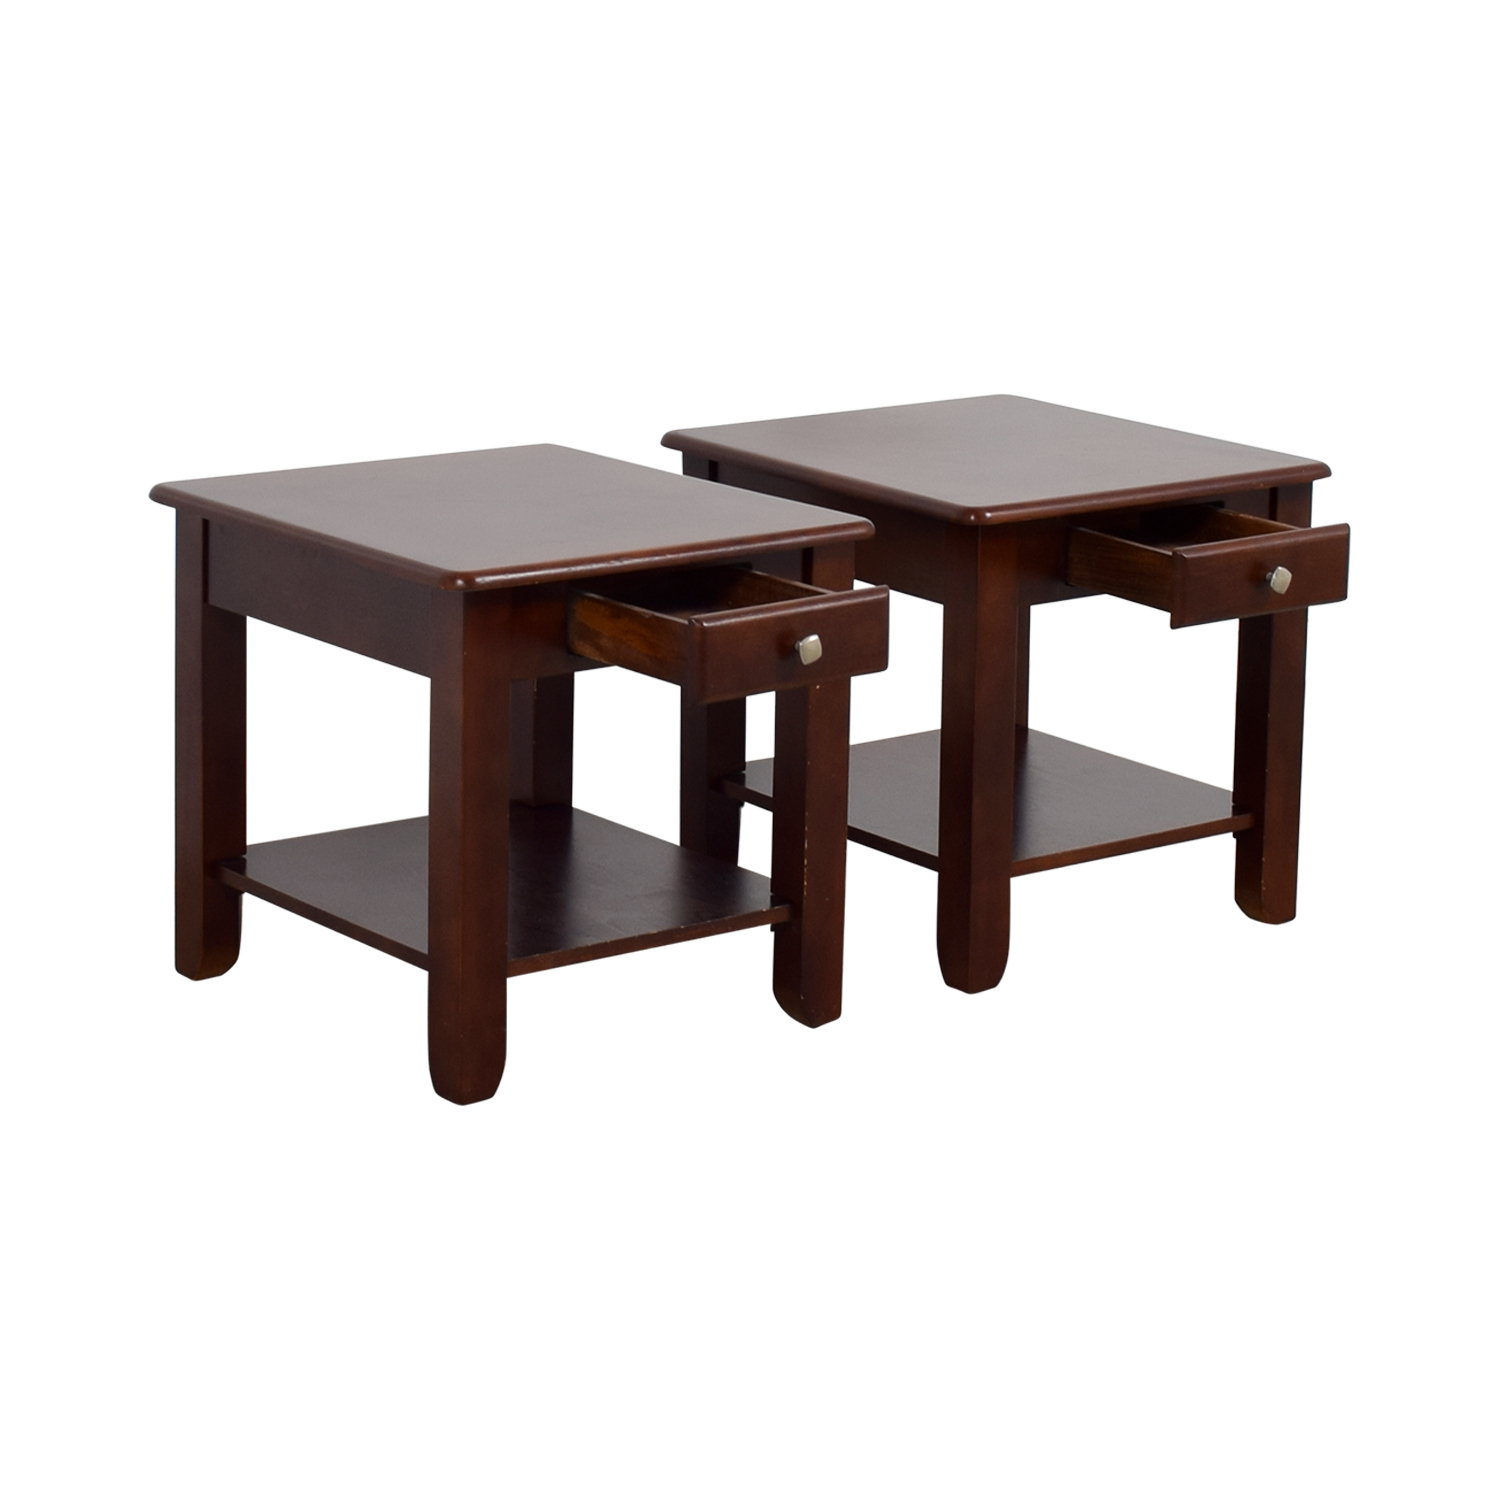 shop Raymour & Flanigan End Table set Raymour & Flanigan End Tables